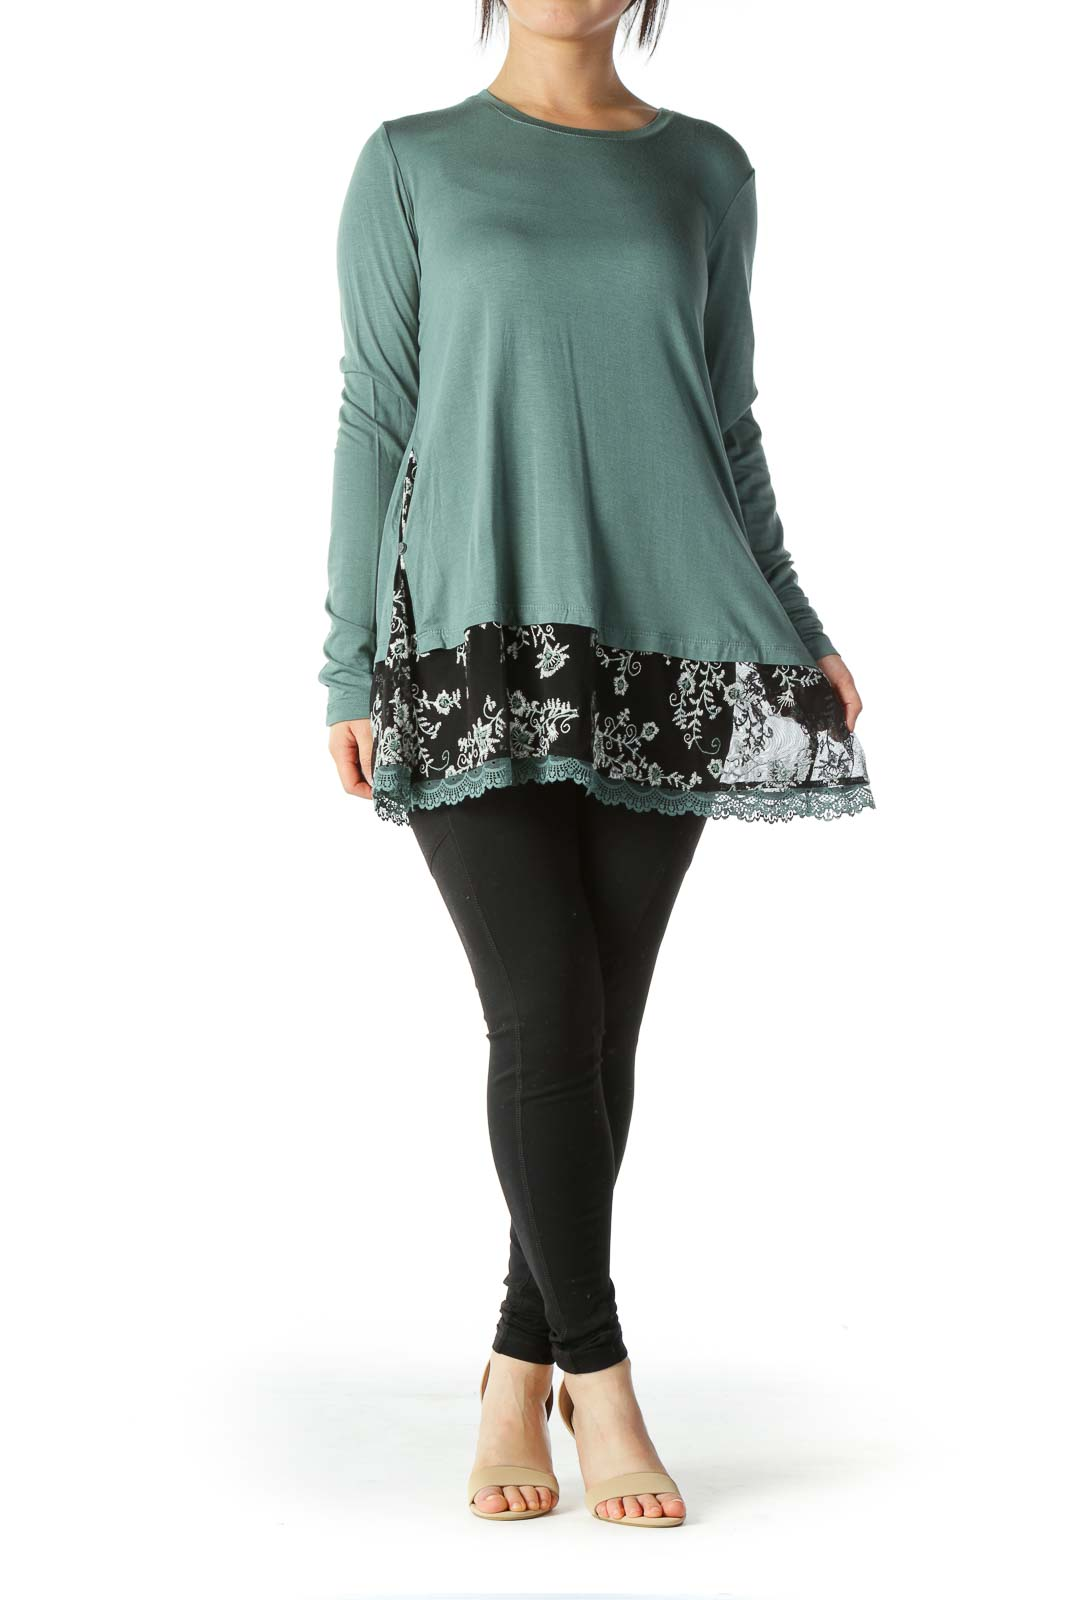 Turquoise Floral Embroidered Long Sleeve Top